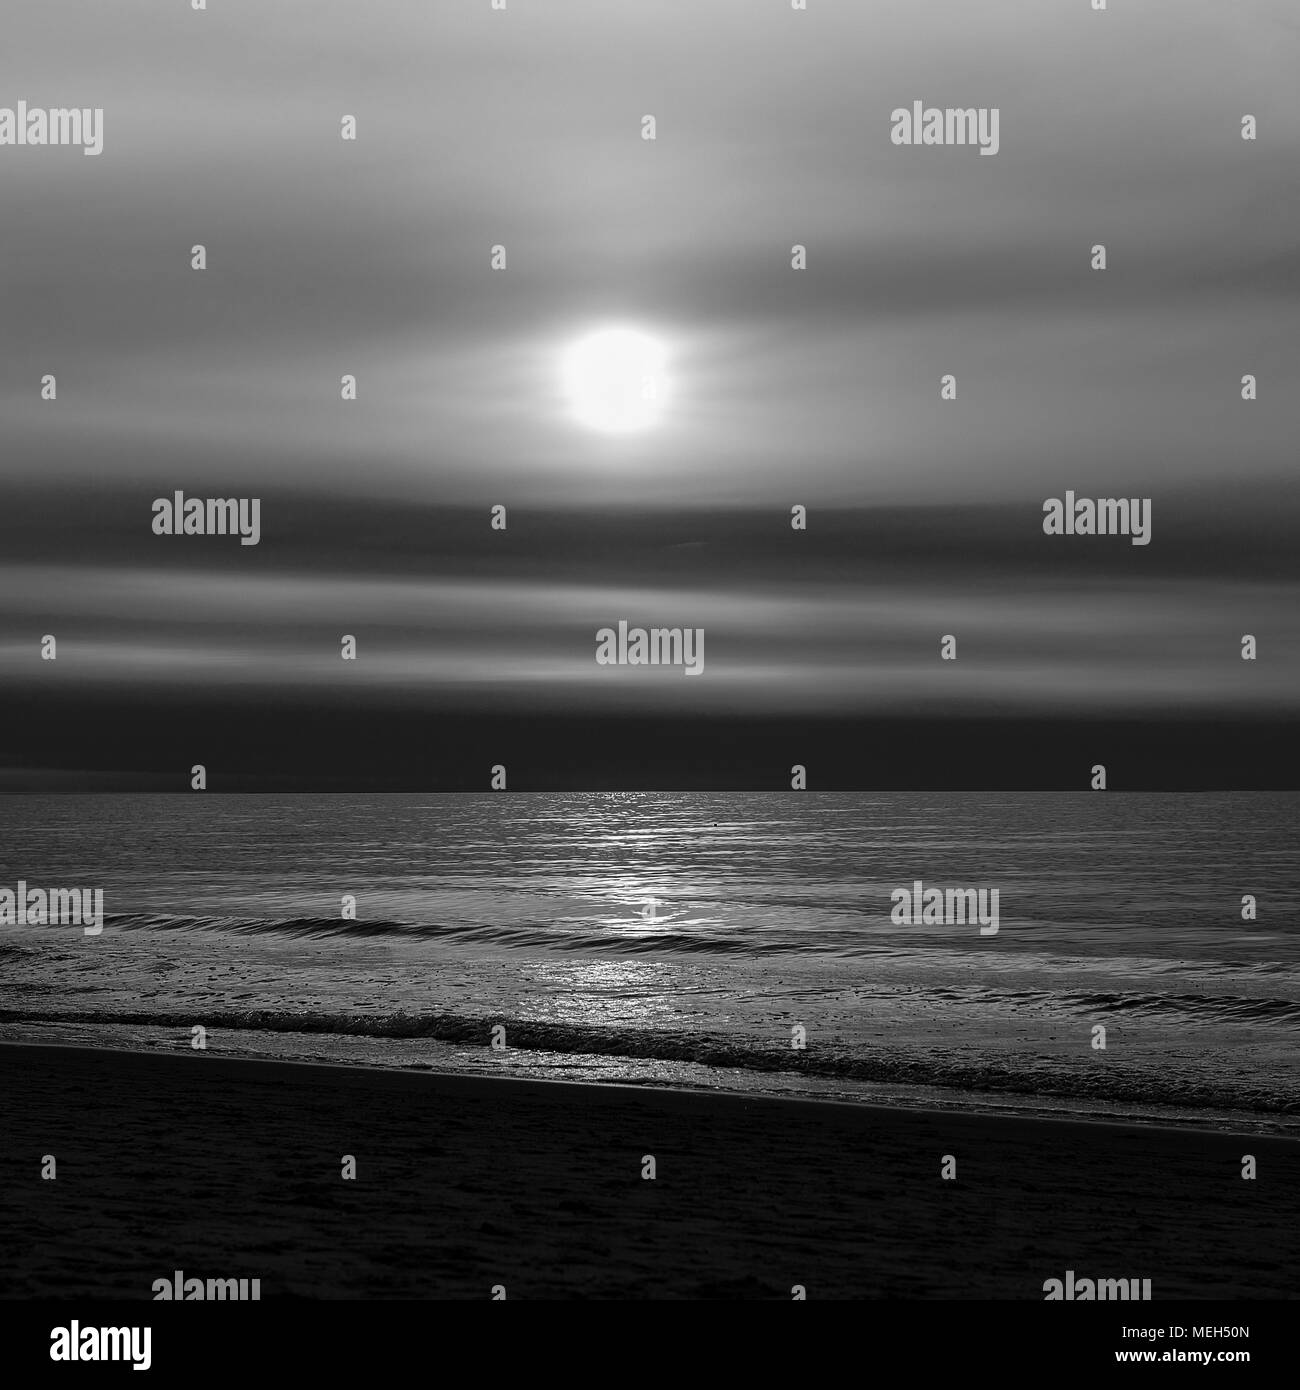 Sea sunset in black and white - Stock Image